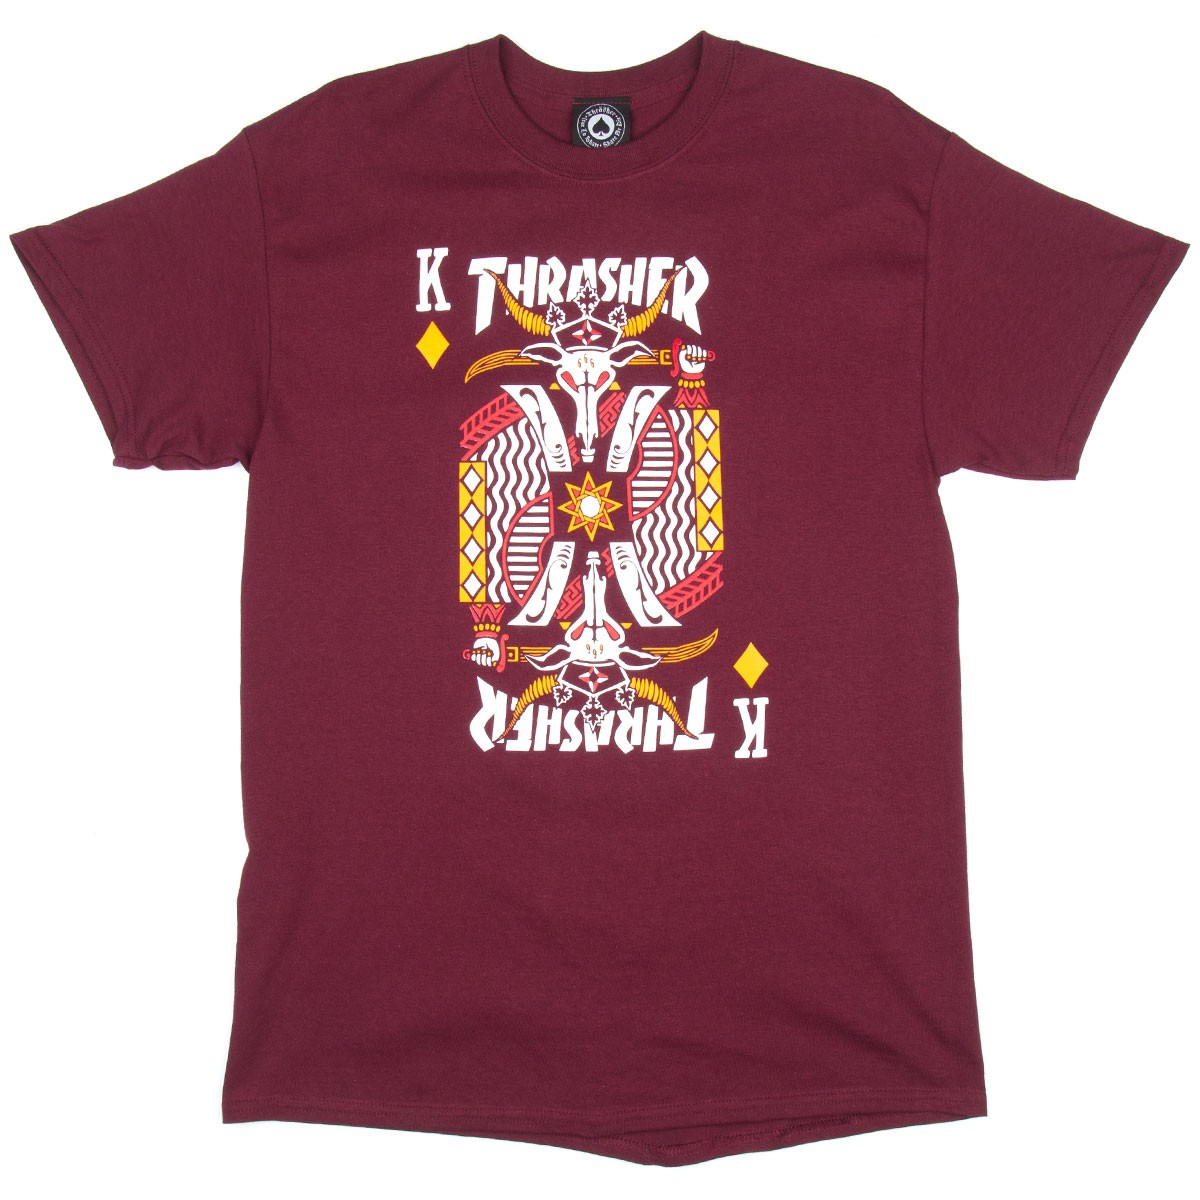 Thrasher king of diamonds t shirt maroon for Name brand t shirts on sale